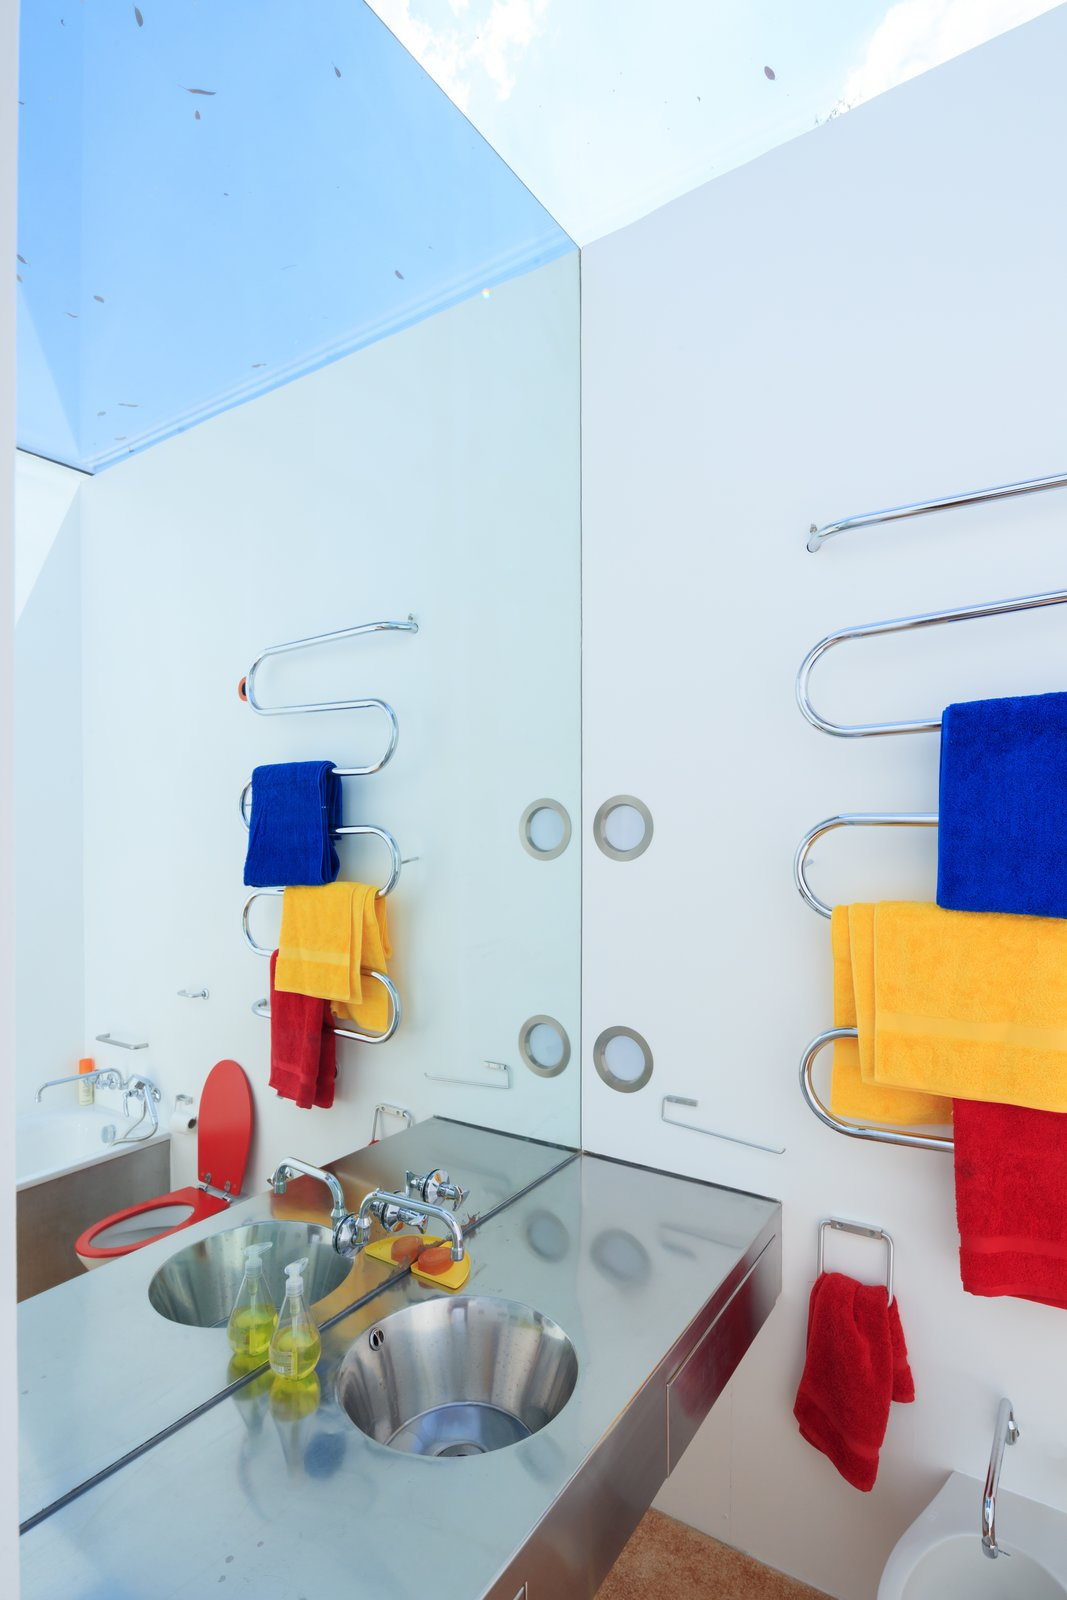 Bath Room  Photo 12 of 14 in Fully Renovated, Wimbledon House by Richard Rogers Hosts New Architecture Fellows in London